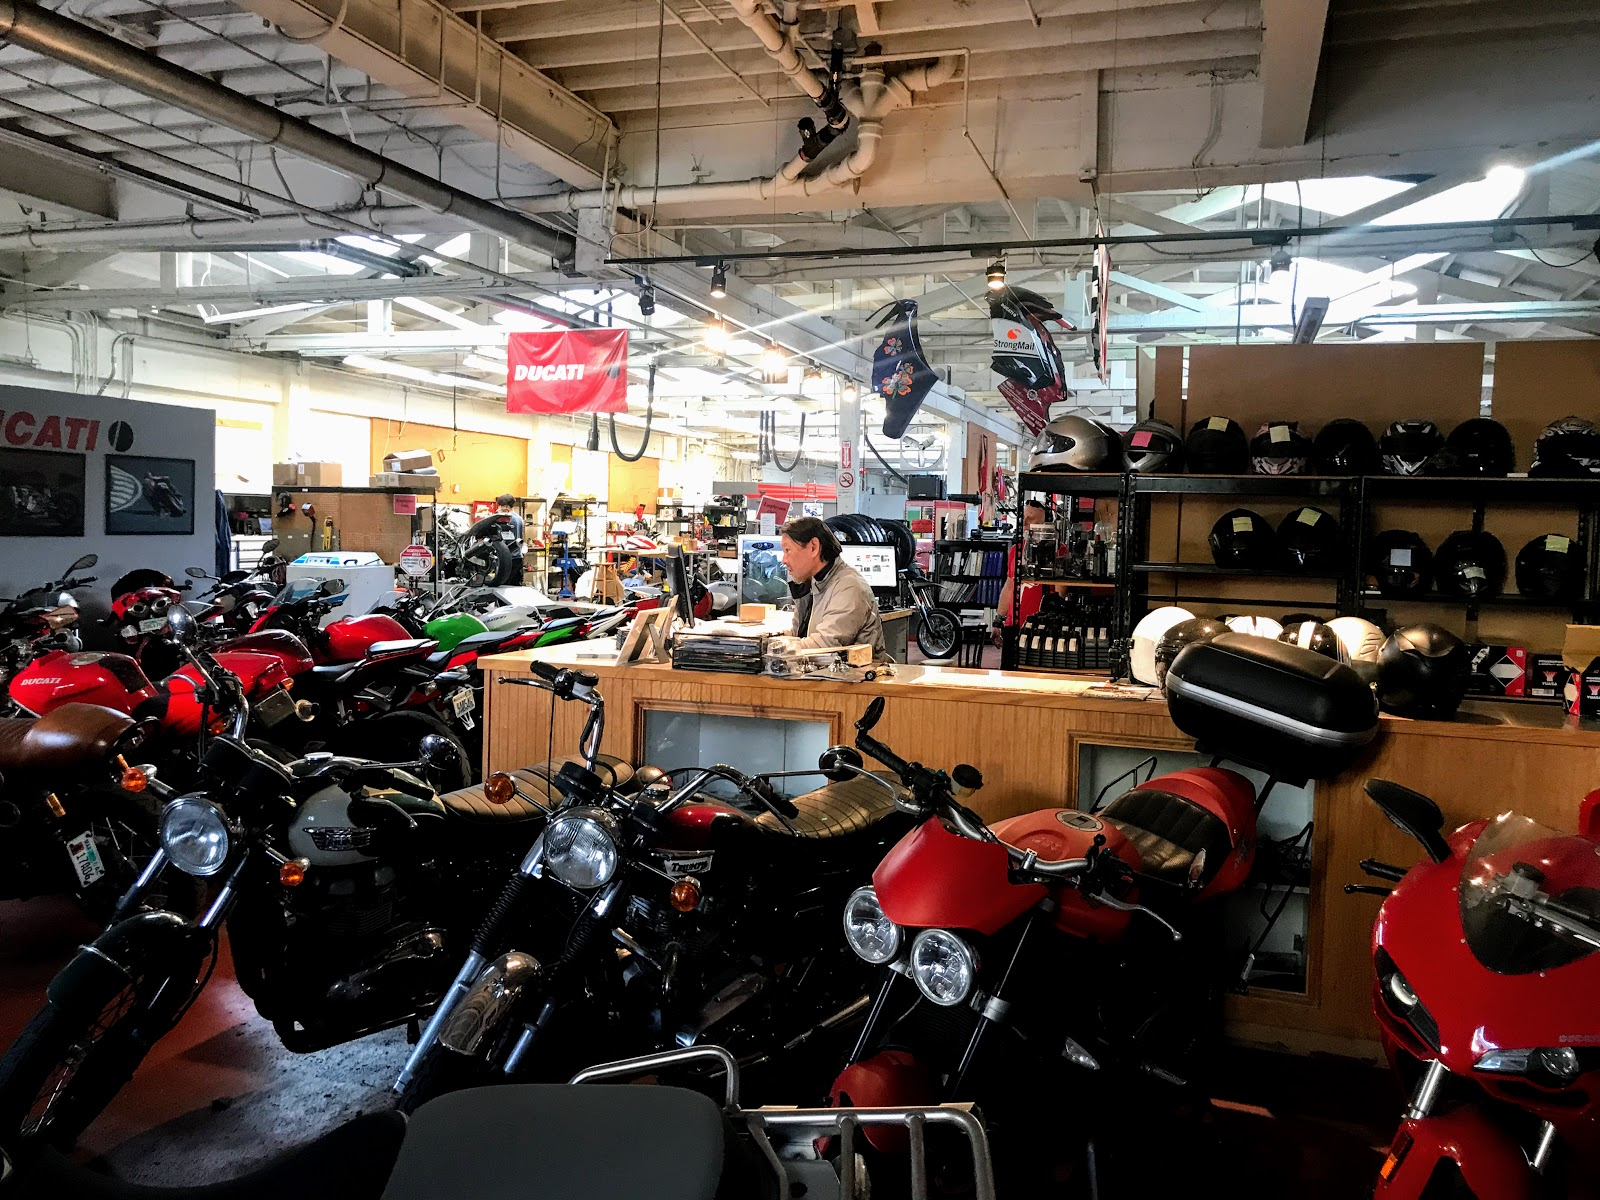 Ducati Travelogue of Tigh Loughhead s Motorcycle Adventures in NYC